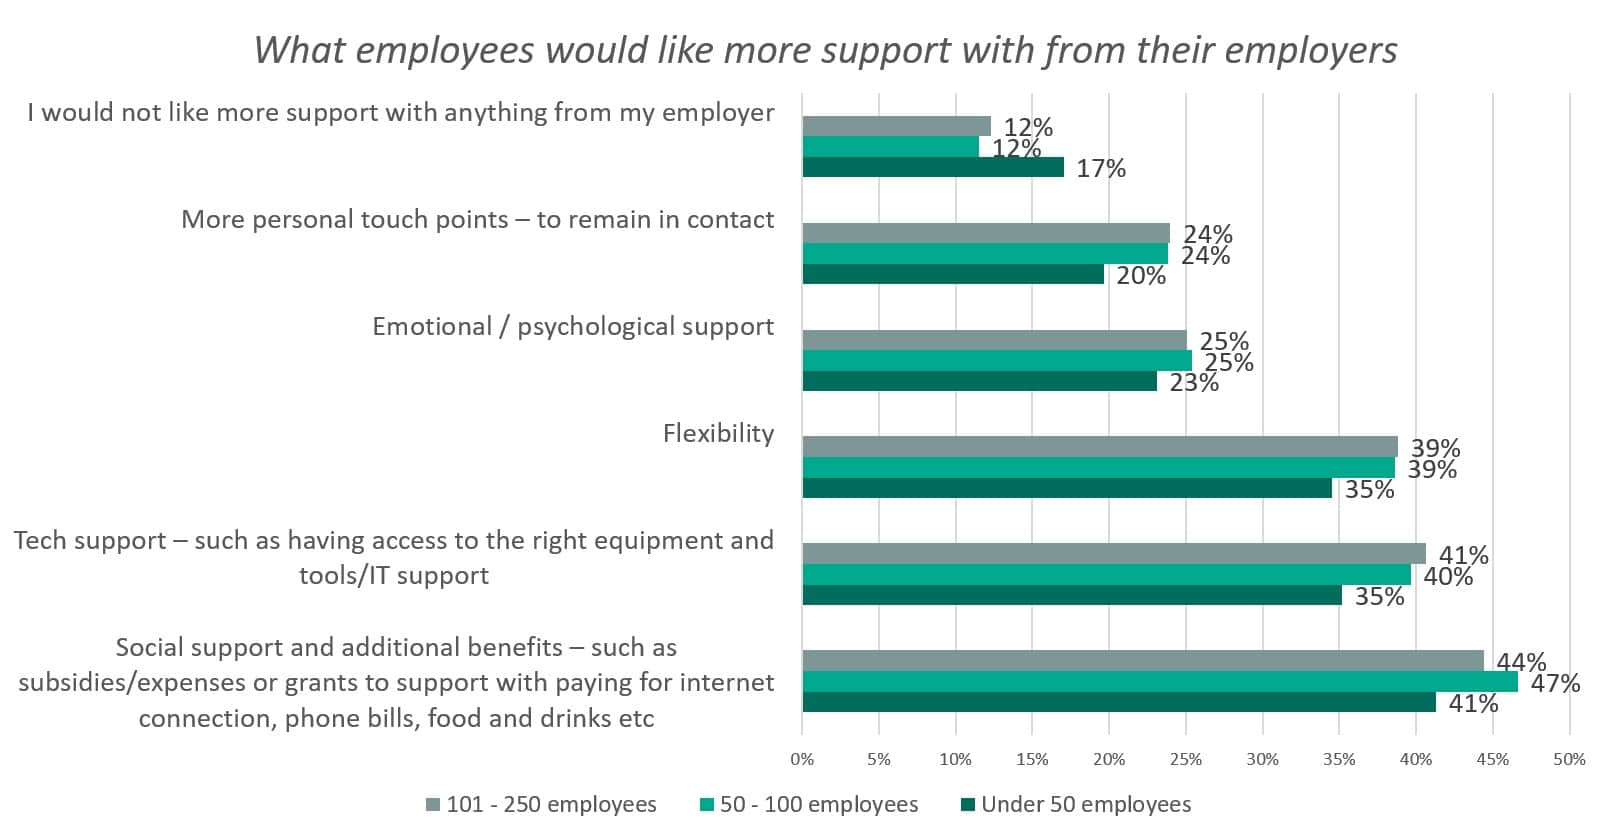 self-sufficient-staff-in-small-companies-need-employer-support-less-than-those-in-larger-firms.jpg